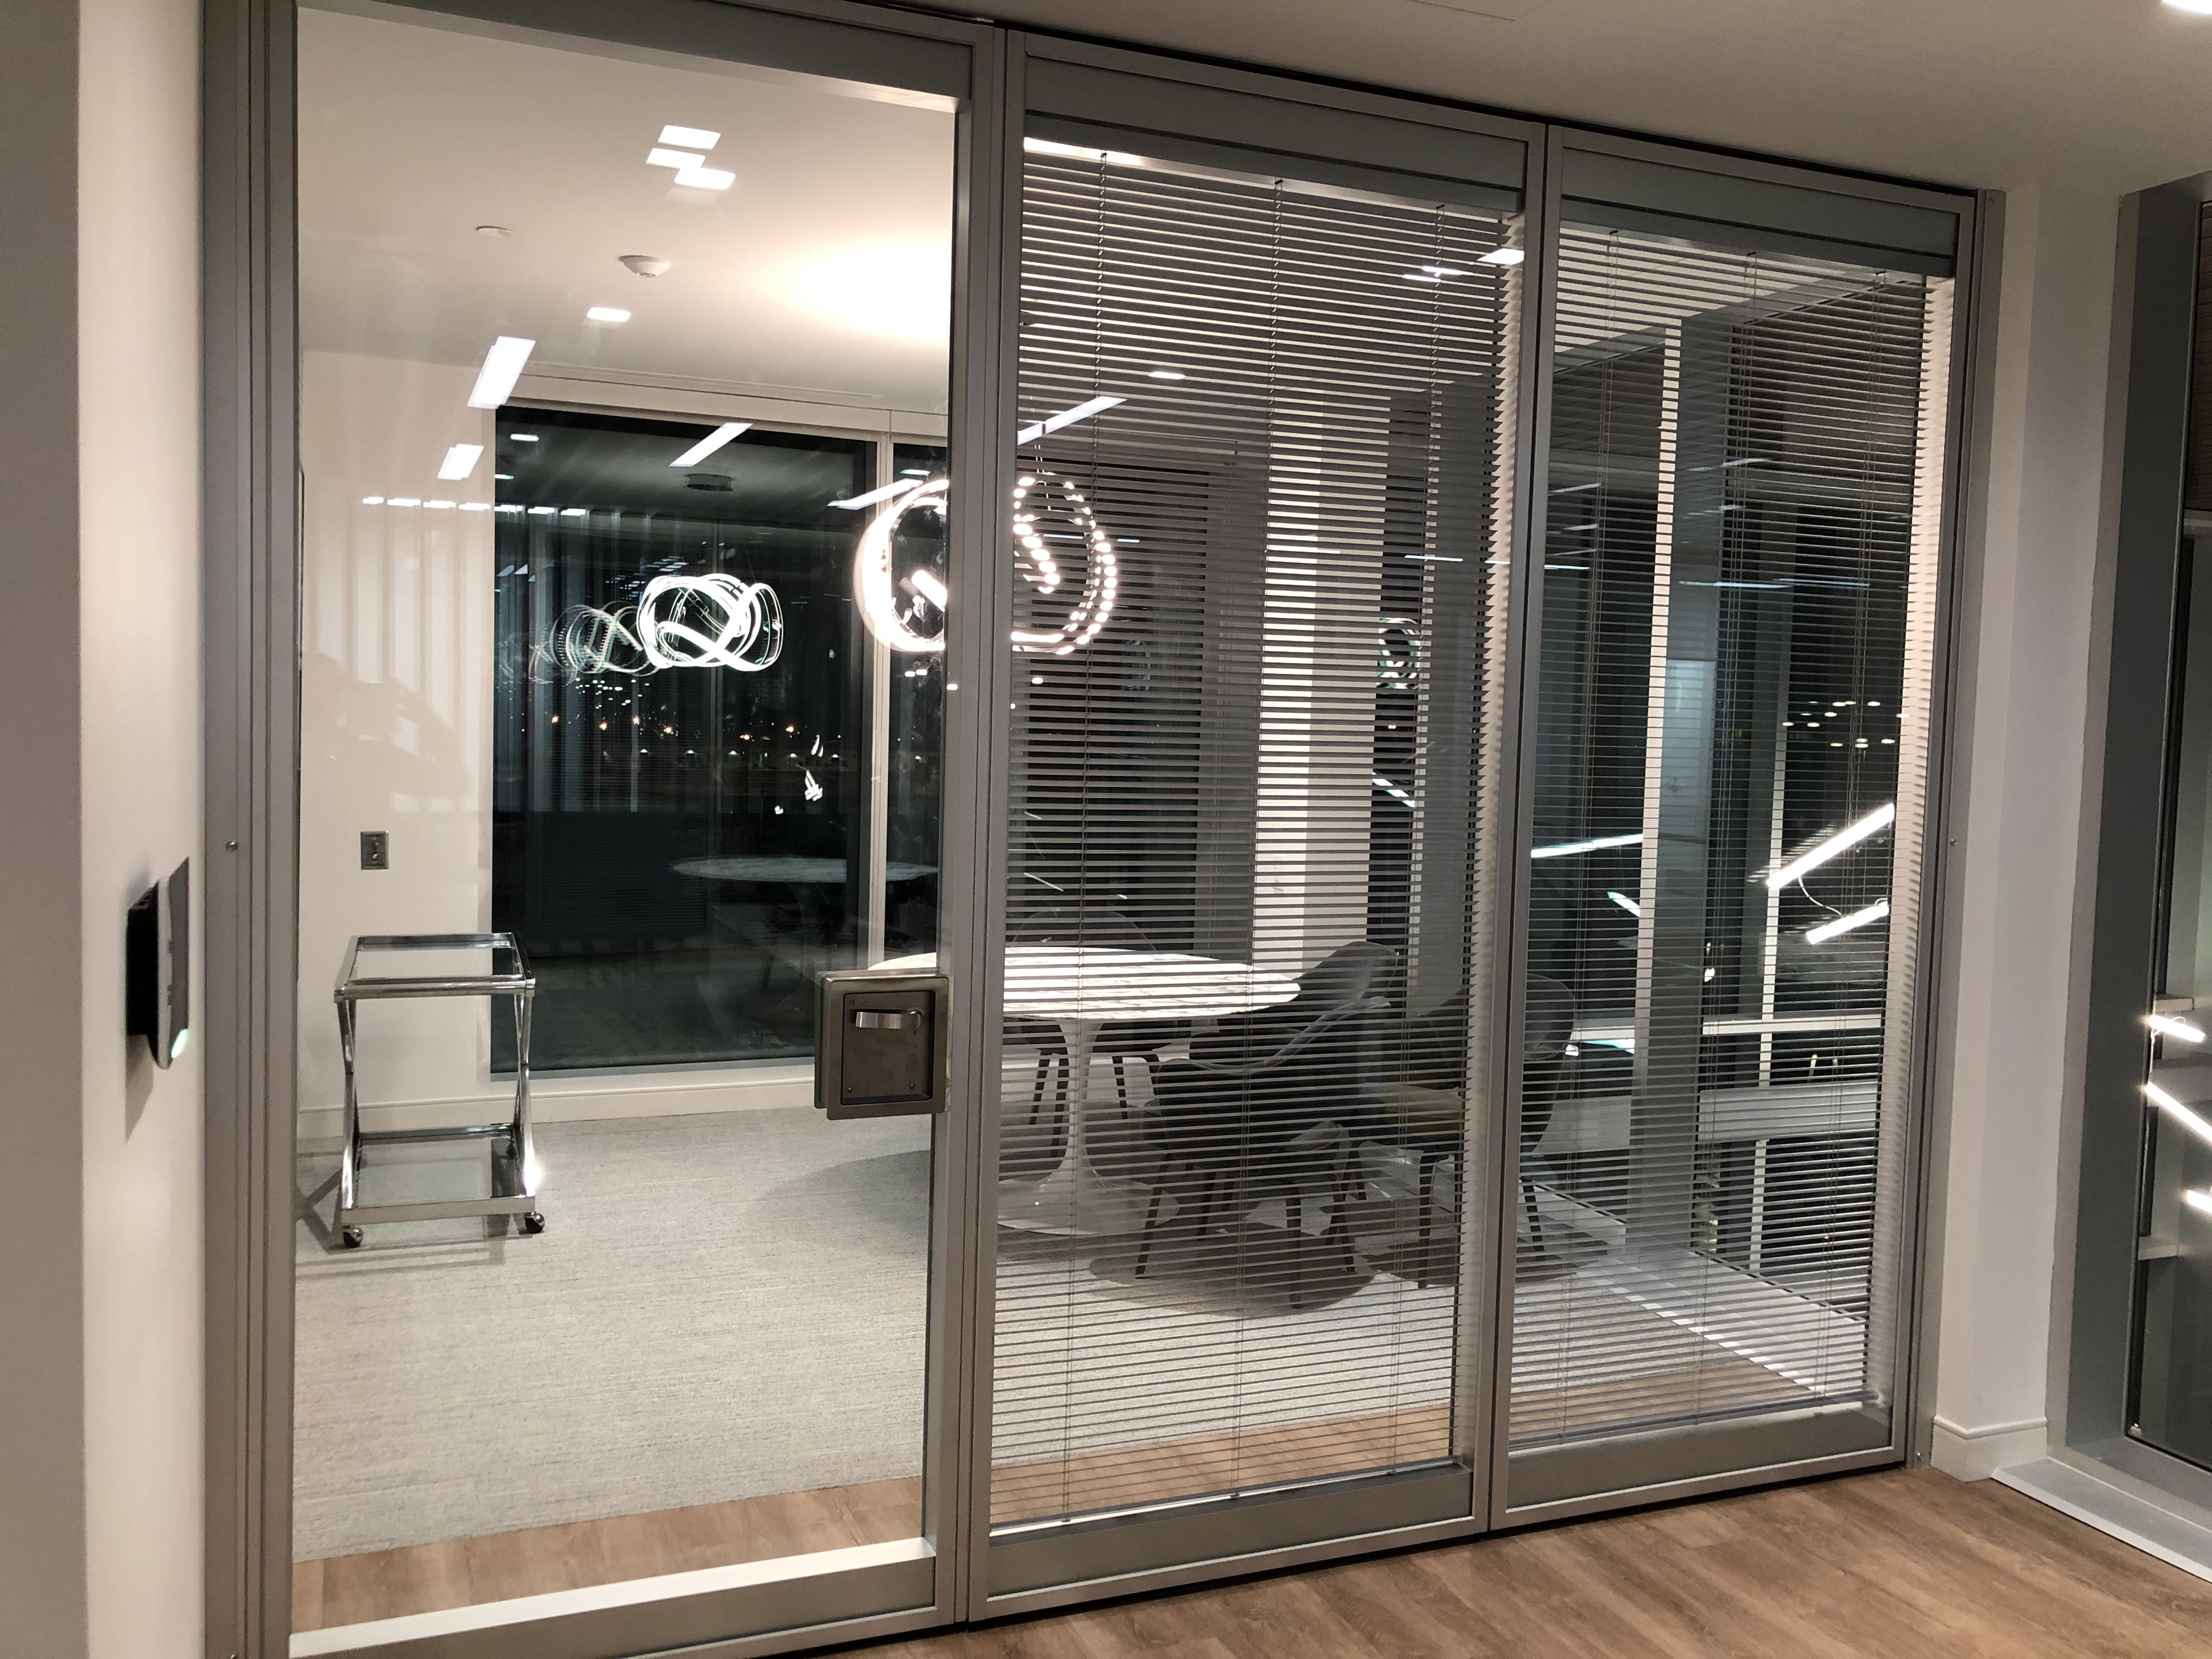 You Can Integrate Blinds For Added Privacy And Light Control Blinds Are Sealed Between Double Glazed Panels Protecting Them From Dirt Du Blinds Home Decor Decor